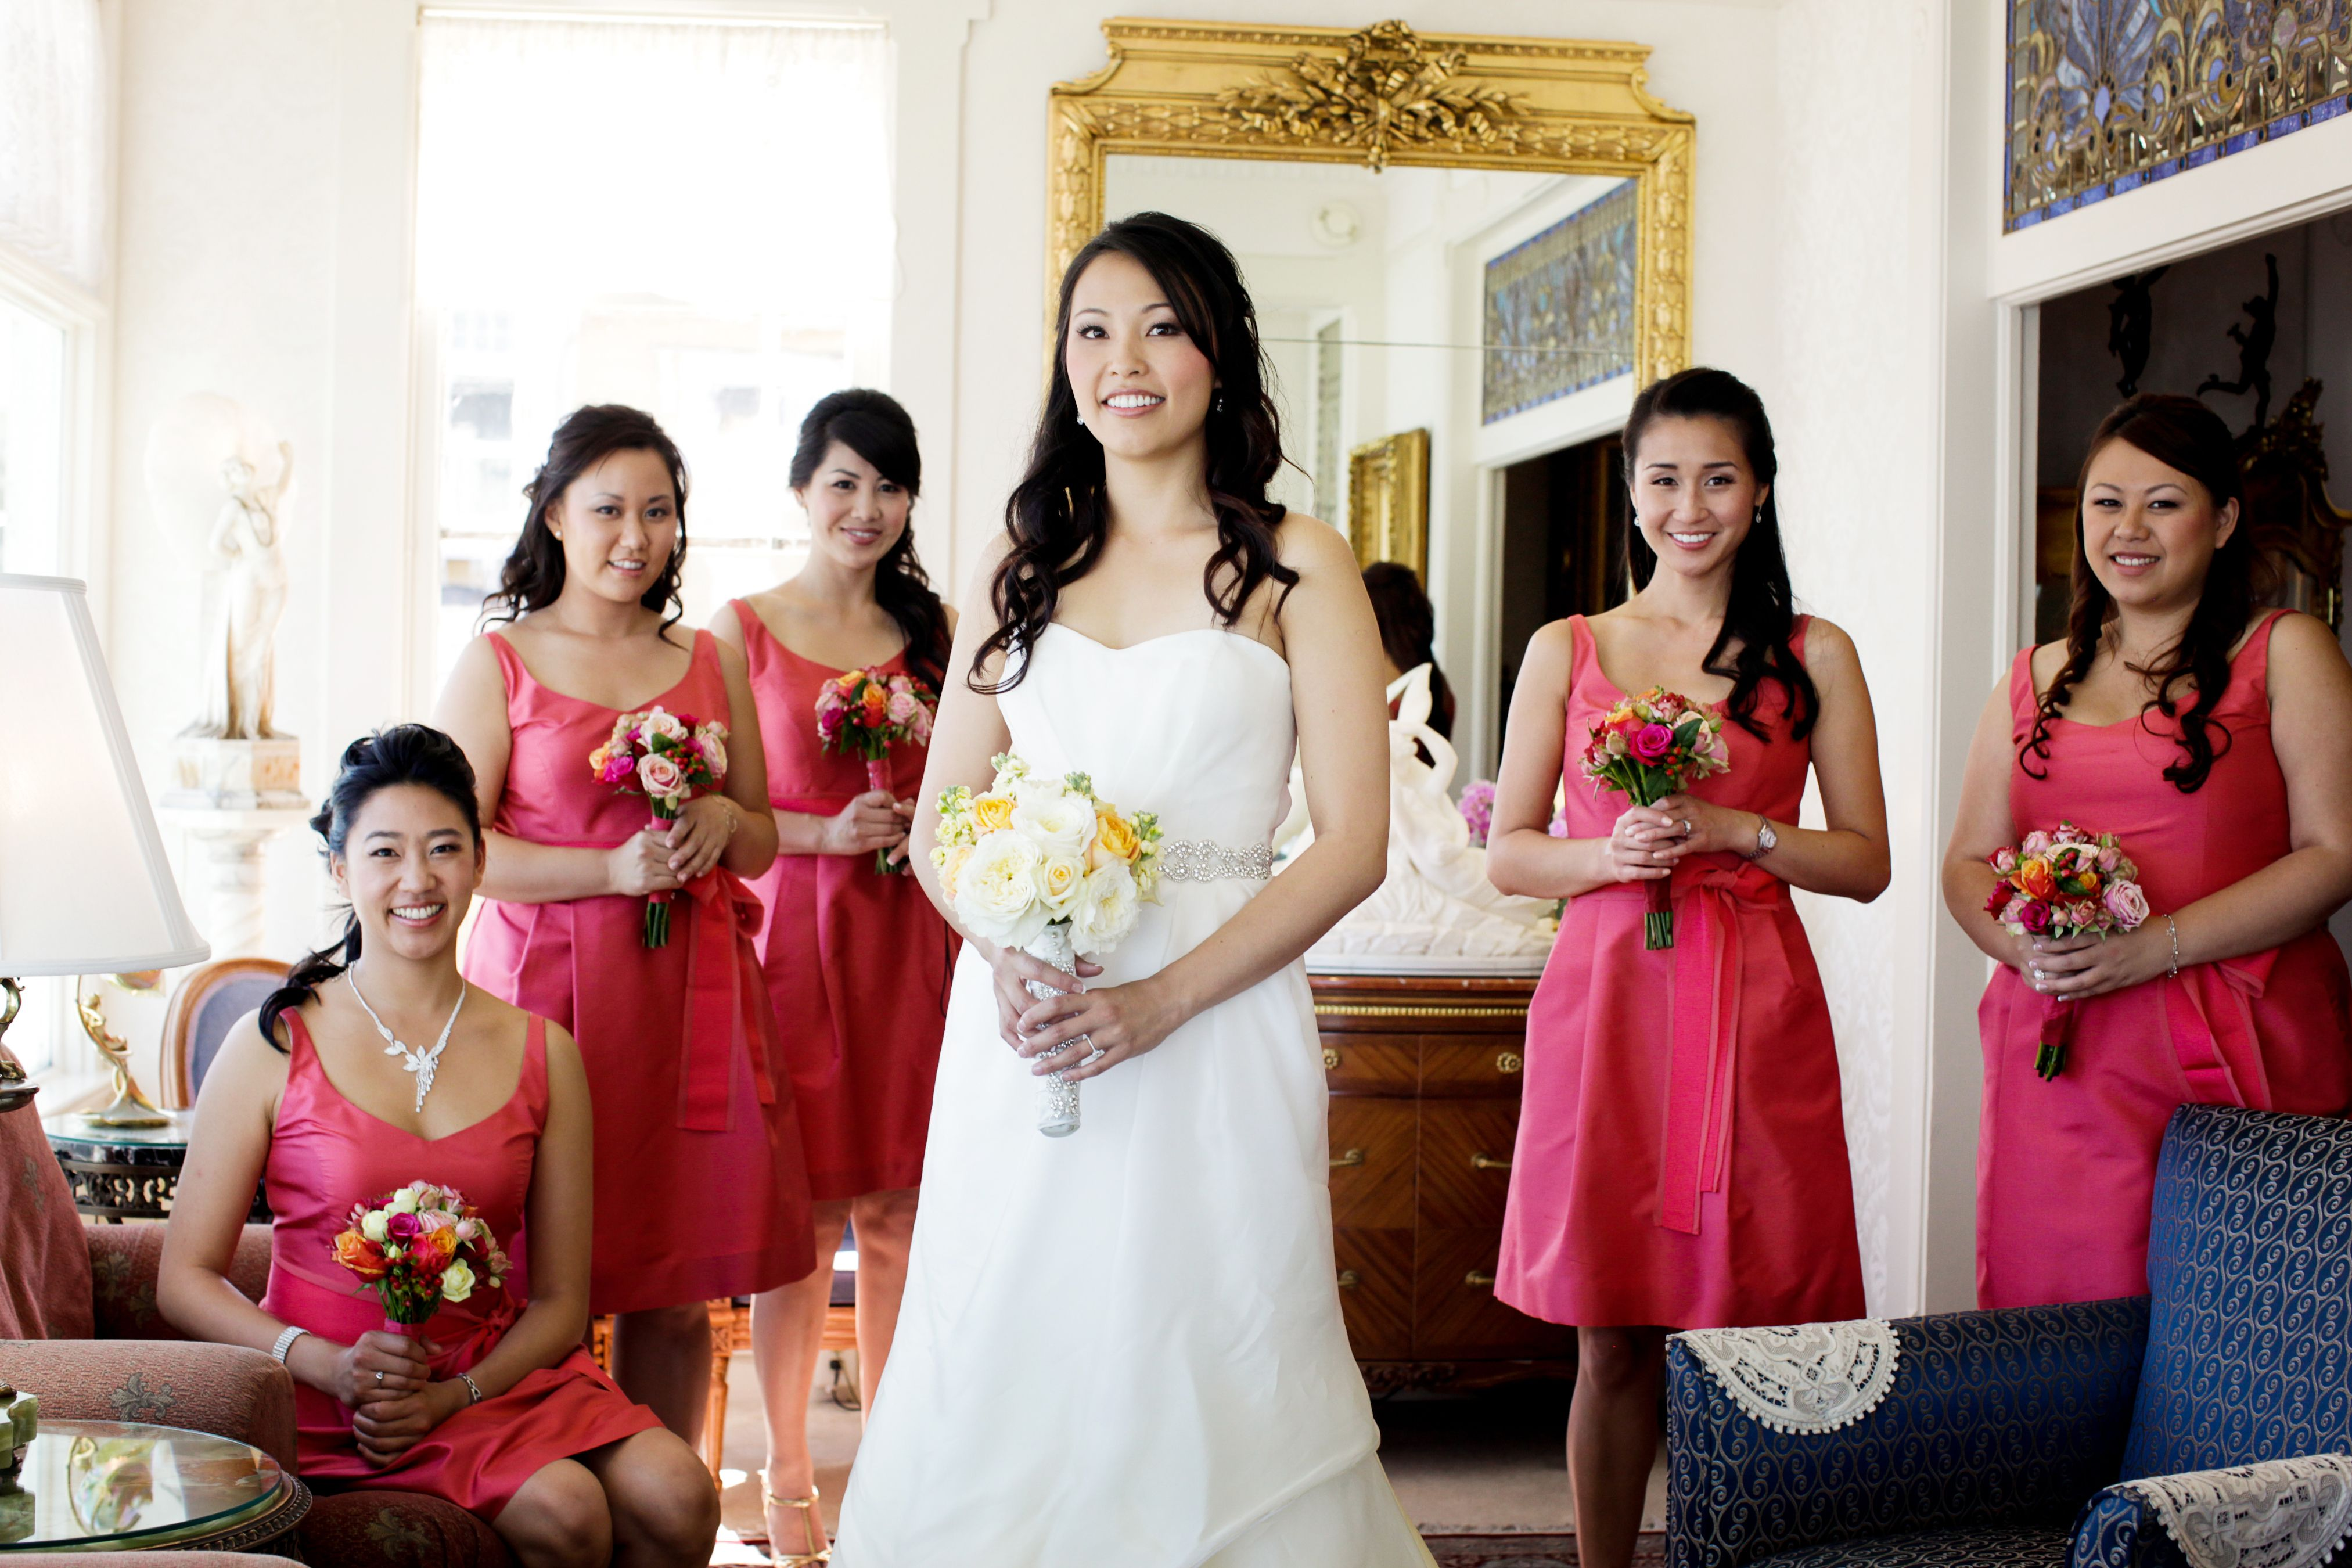 Watermelon colored bridesmaids dresses complimented this wedding watermelon colored bridesmaids dresses complimented this wedding party at lovers point and the celebration followed ombrellifo Image collections